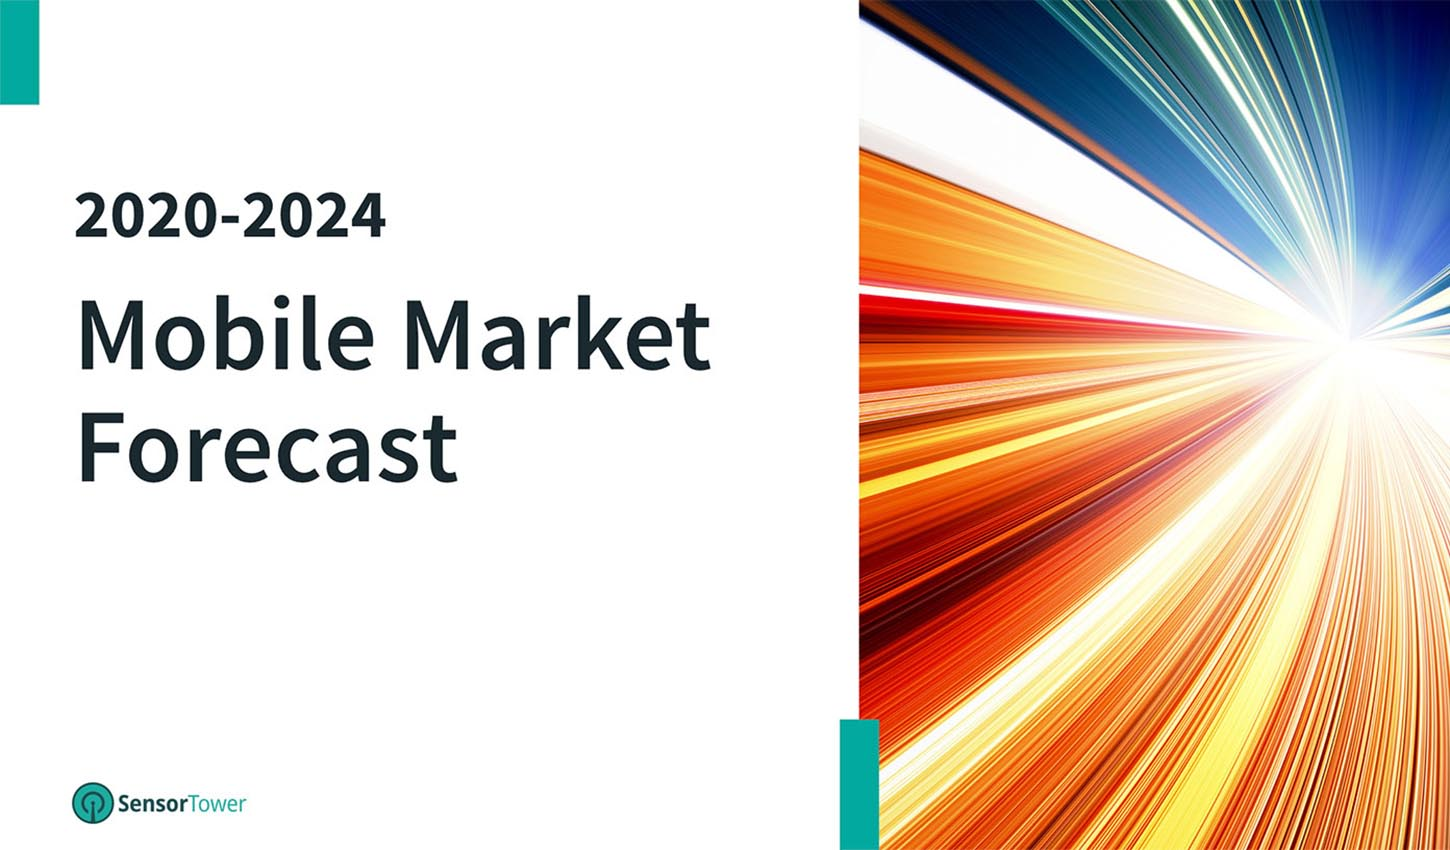 5 Year Market Forecast App Spending Will Double To 171 Billion By 2024 Despite Covid 19 Internet Technology News See more of kazuhira miller on facebook. 171 billion by 2024 despite covid 19